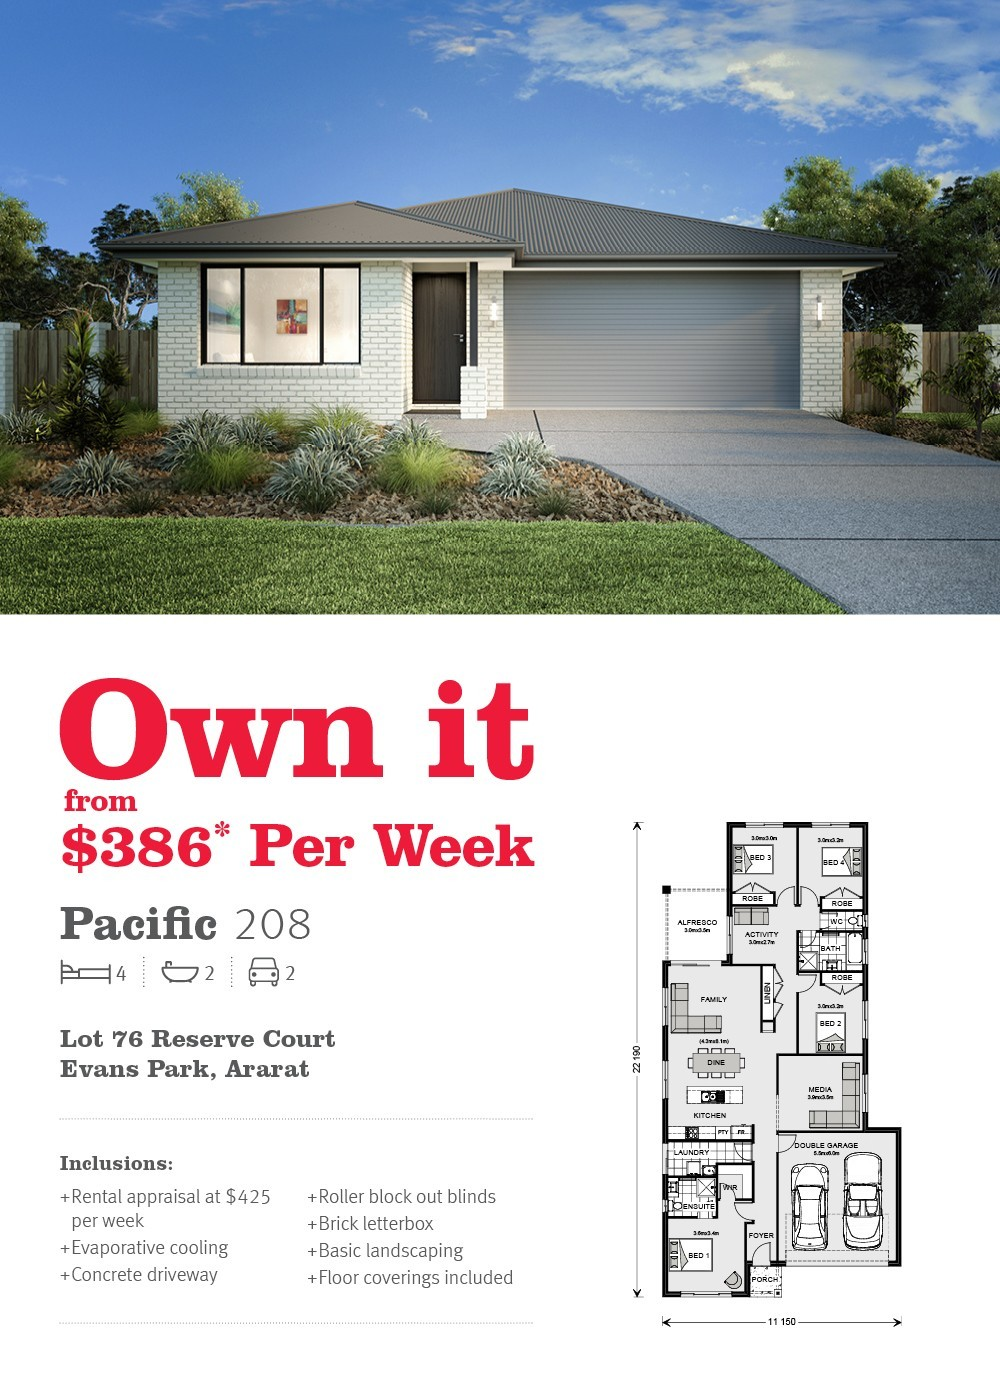 House and land in Ararat from just $386 per week*